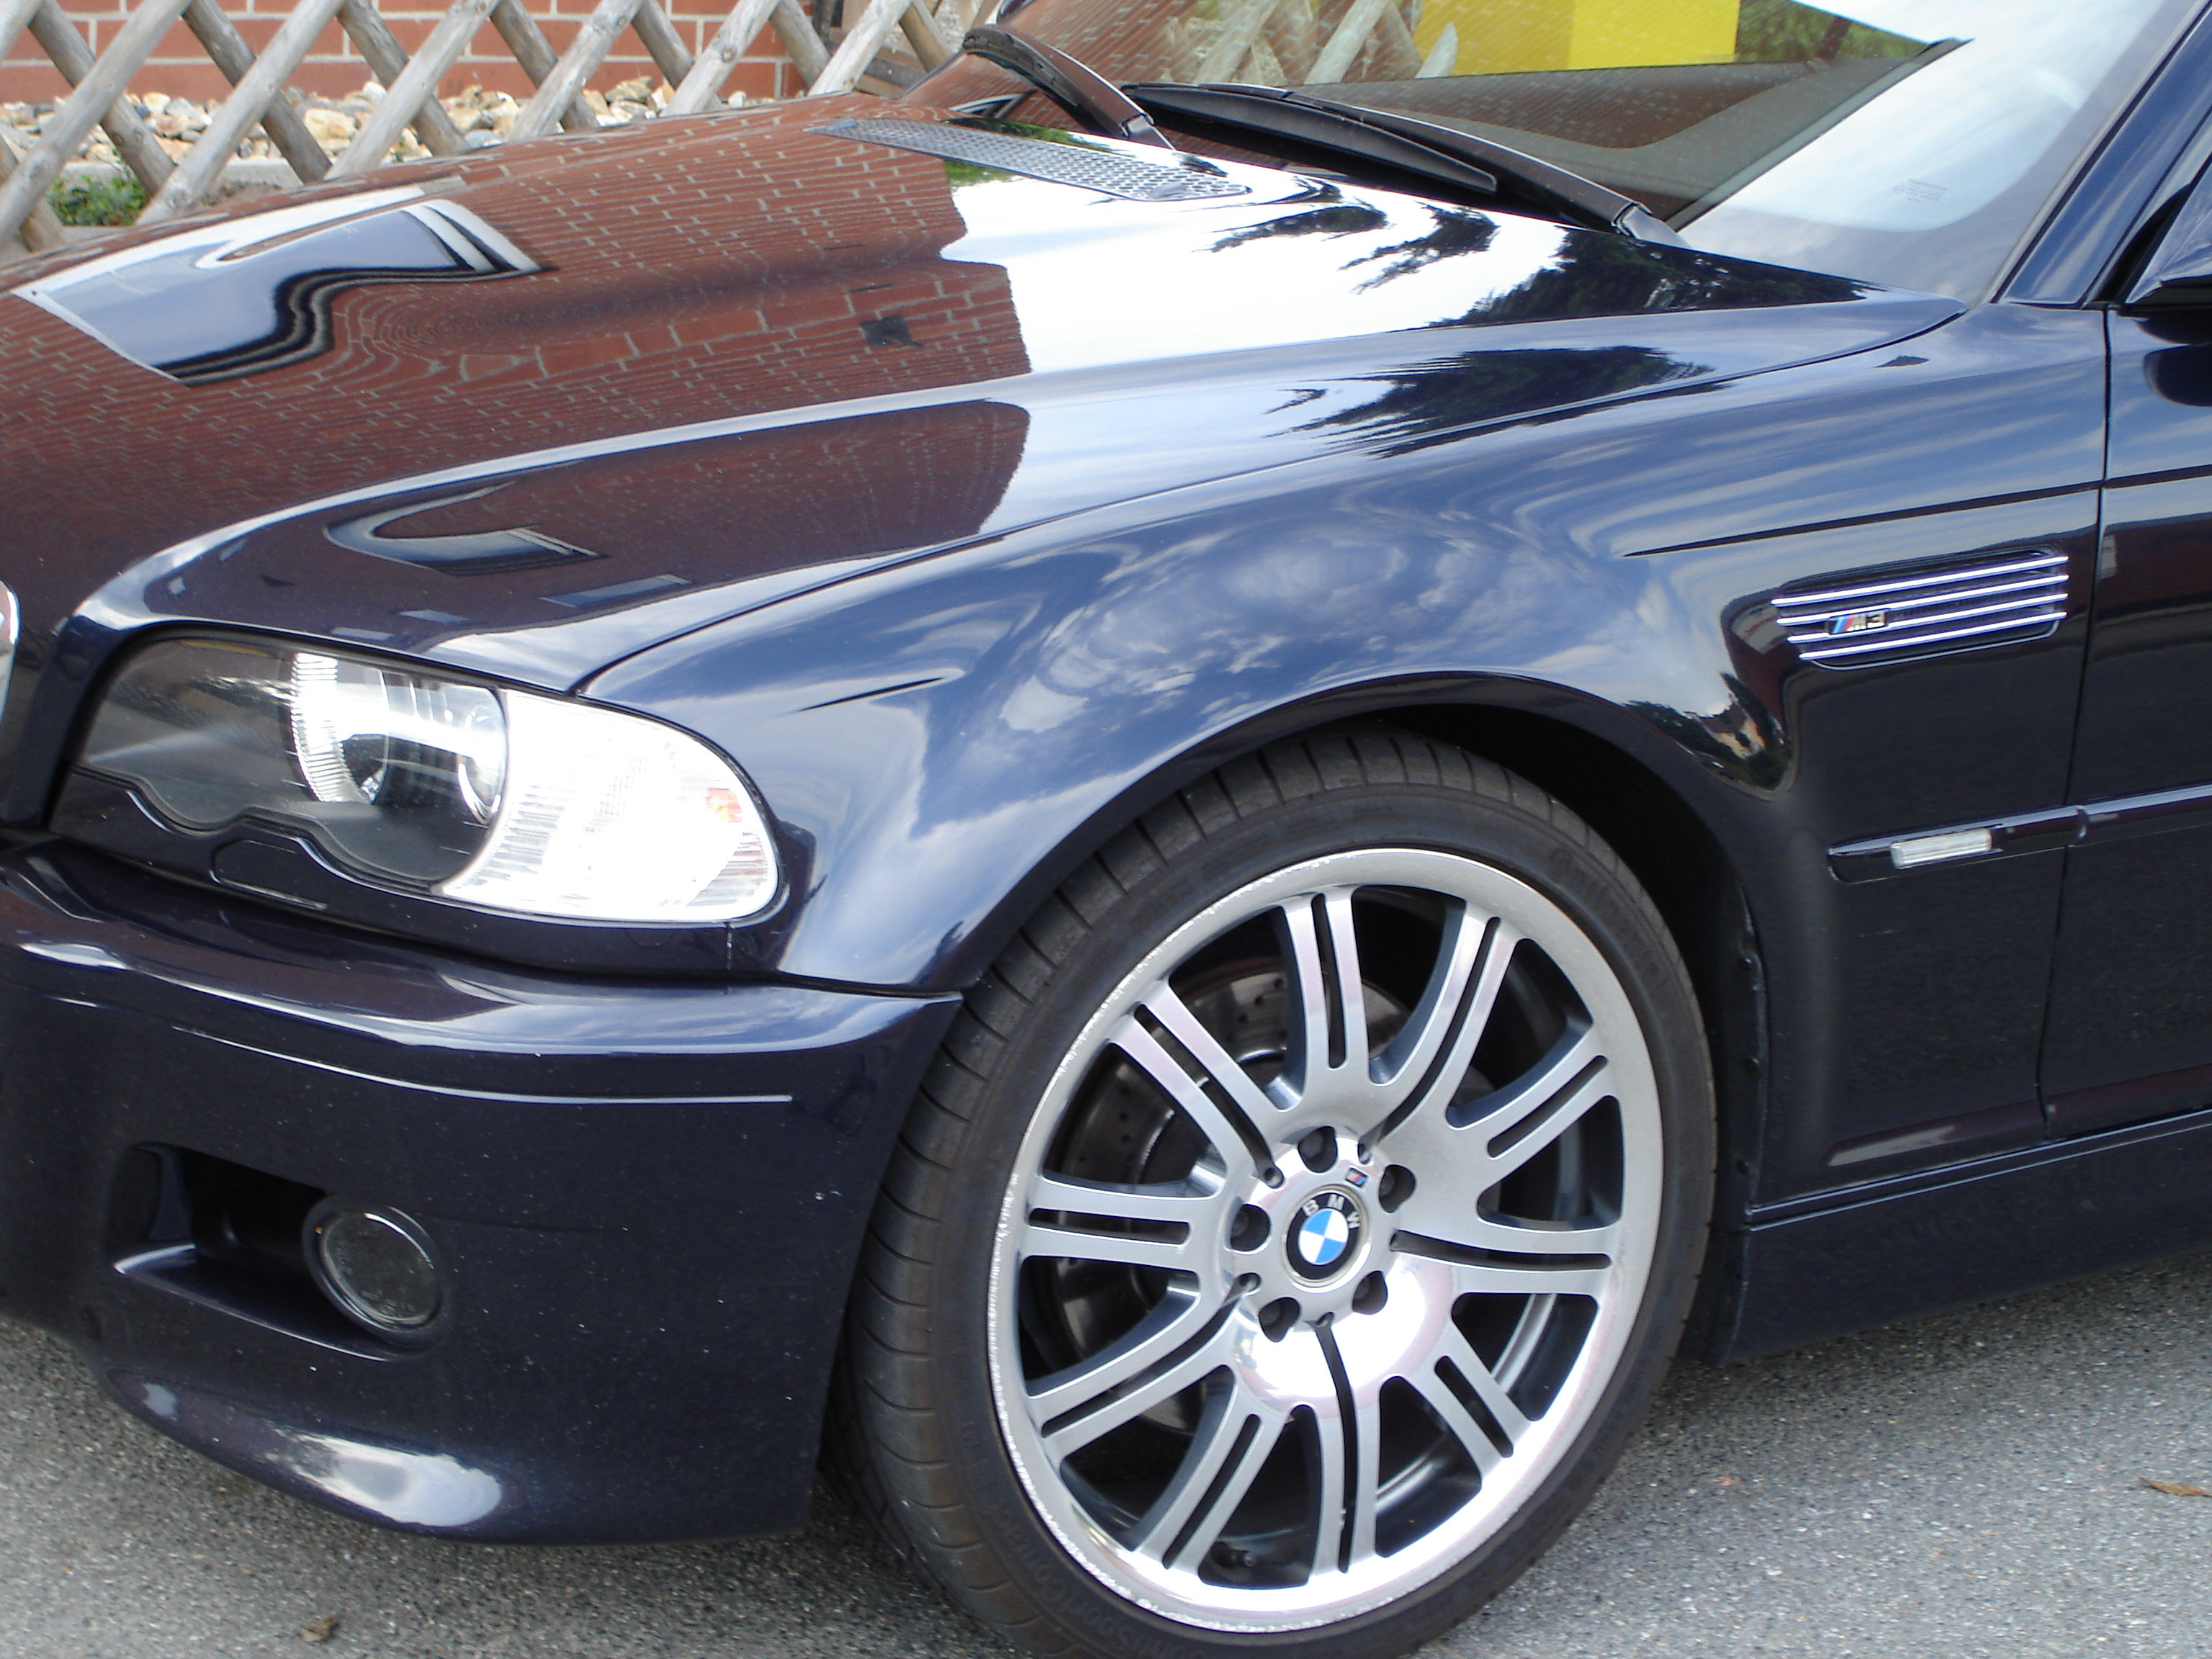 file bmw m3 e46 cabrio detail jpg wikimedia commons. Black Bedroom Furniture Sets. Home Design Ideas